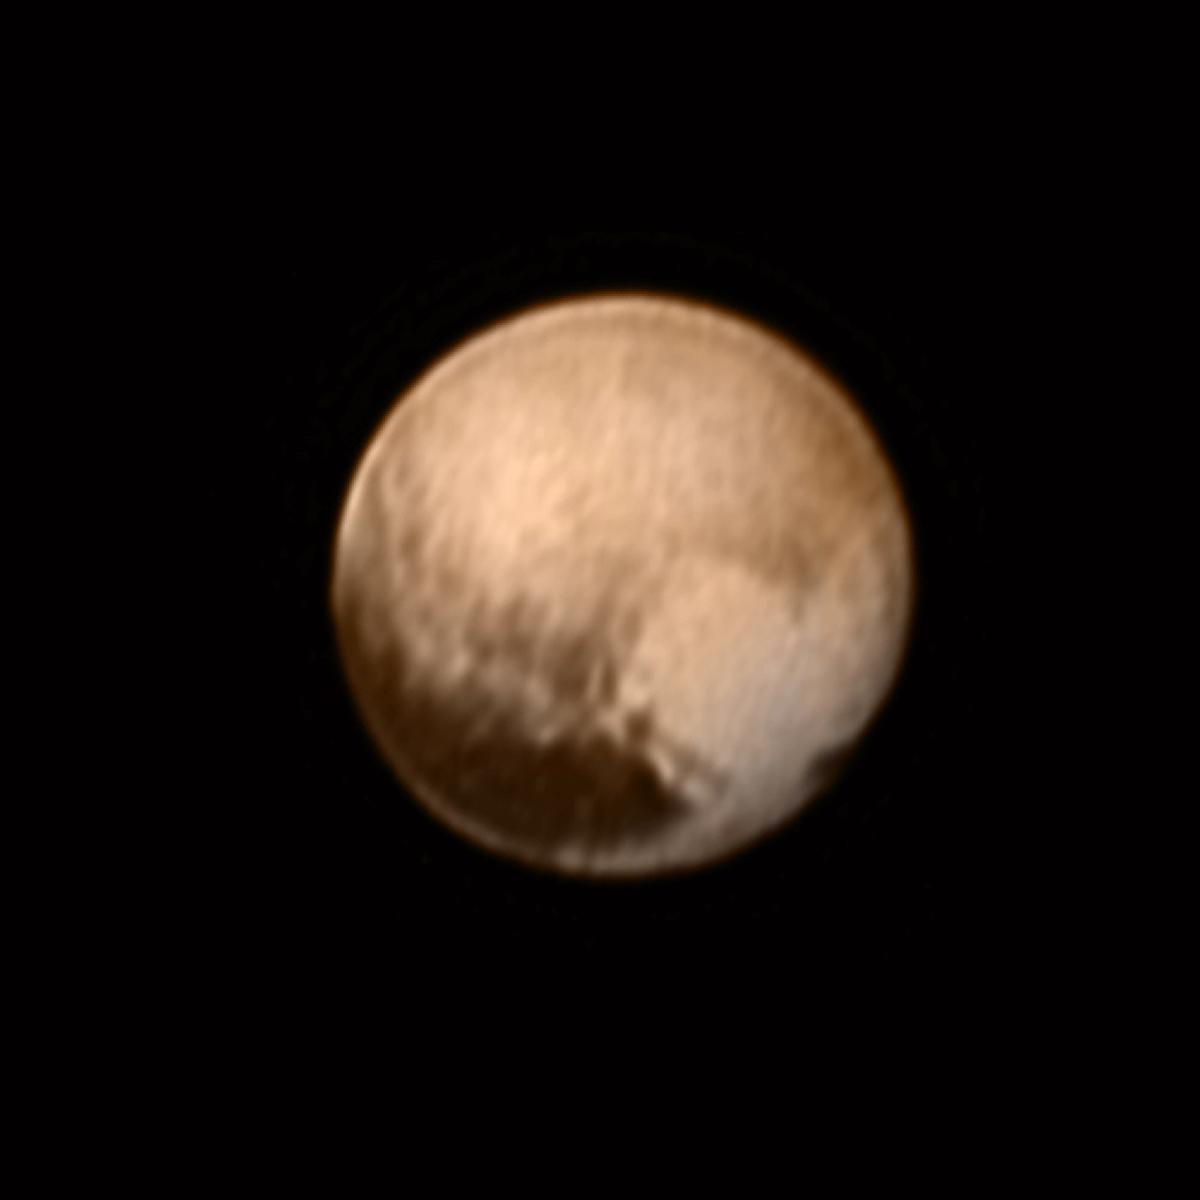 Color image of Pluto as seen on July 8 from New Horizons